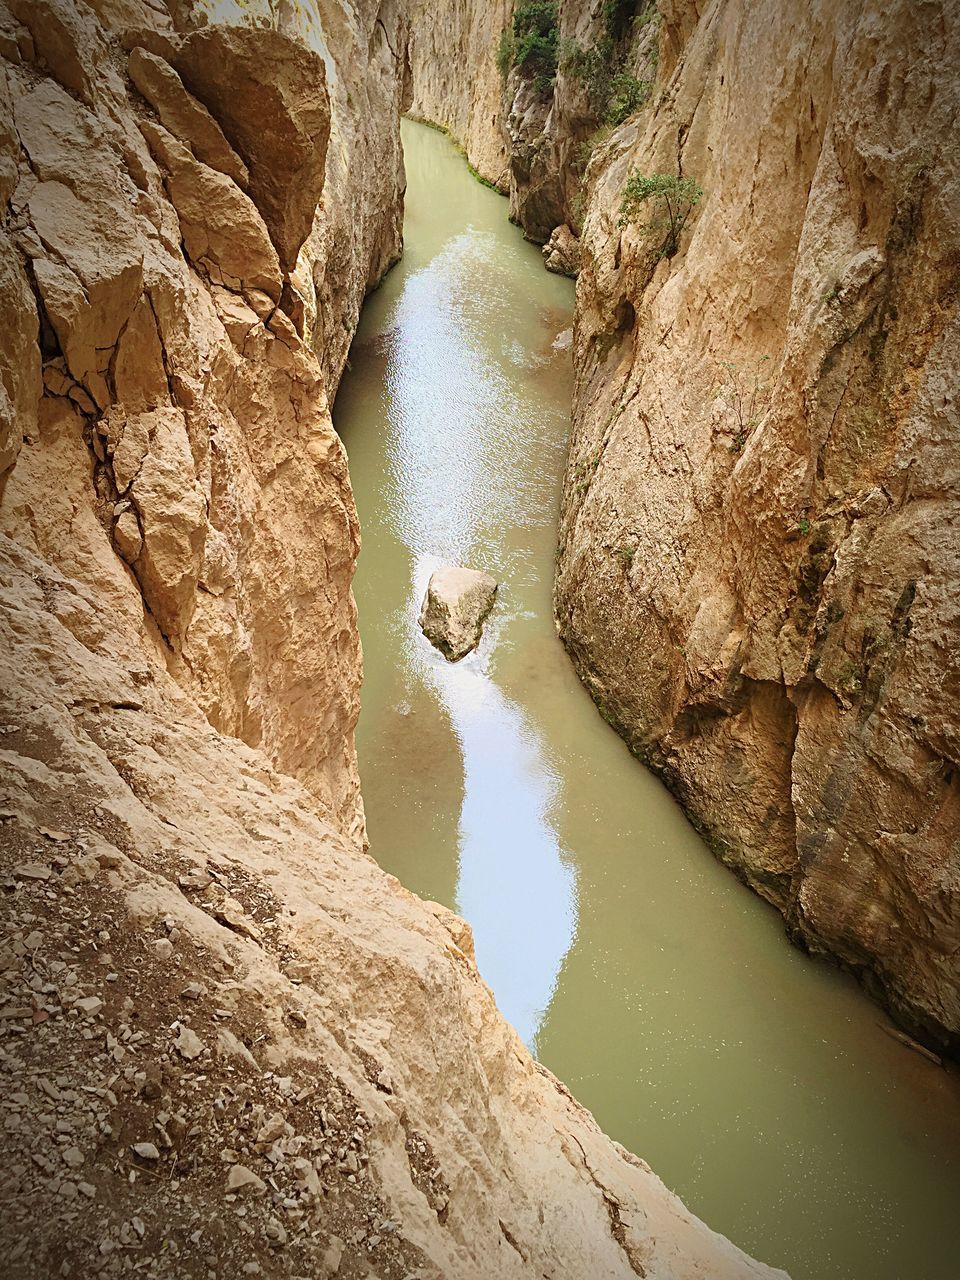 water, rock, rock - object, solid, rock formation, scenics - nature, beauty in nature, nature, no people, high angle view, day, river, non-urban scene, tranquility, tranquil scene, geology, outdoors, land, physical geography, eroded, flowing